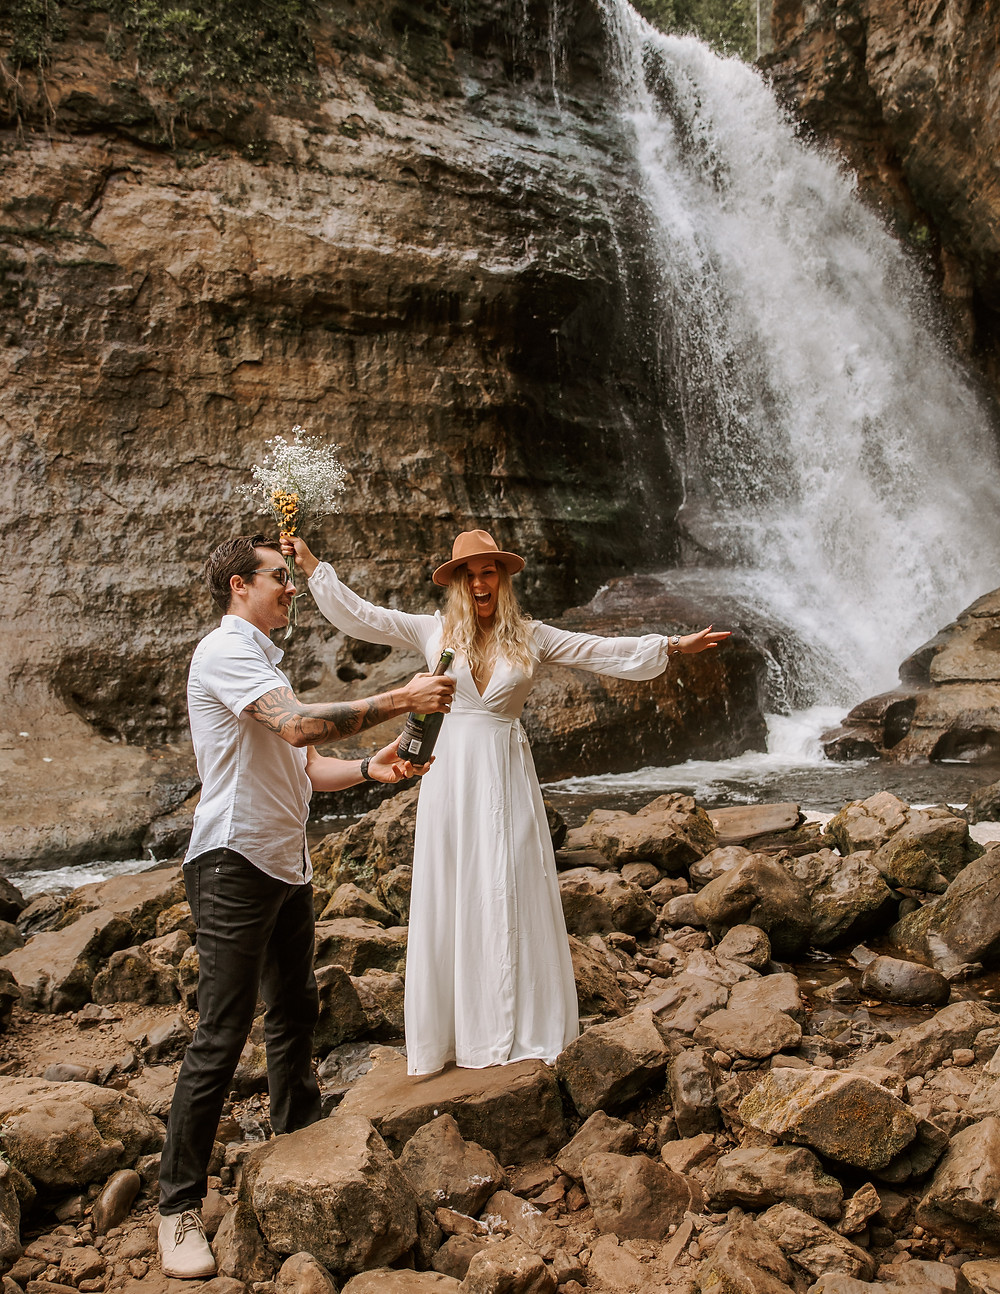 Bride and groom opening a bottle of champagne in front of a waterfall after their elopement.